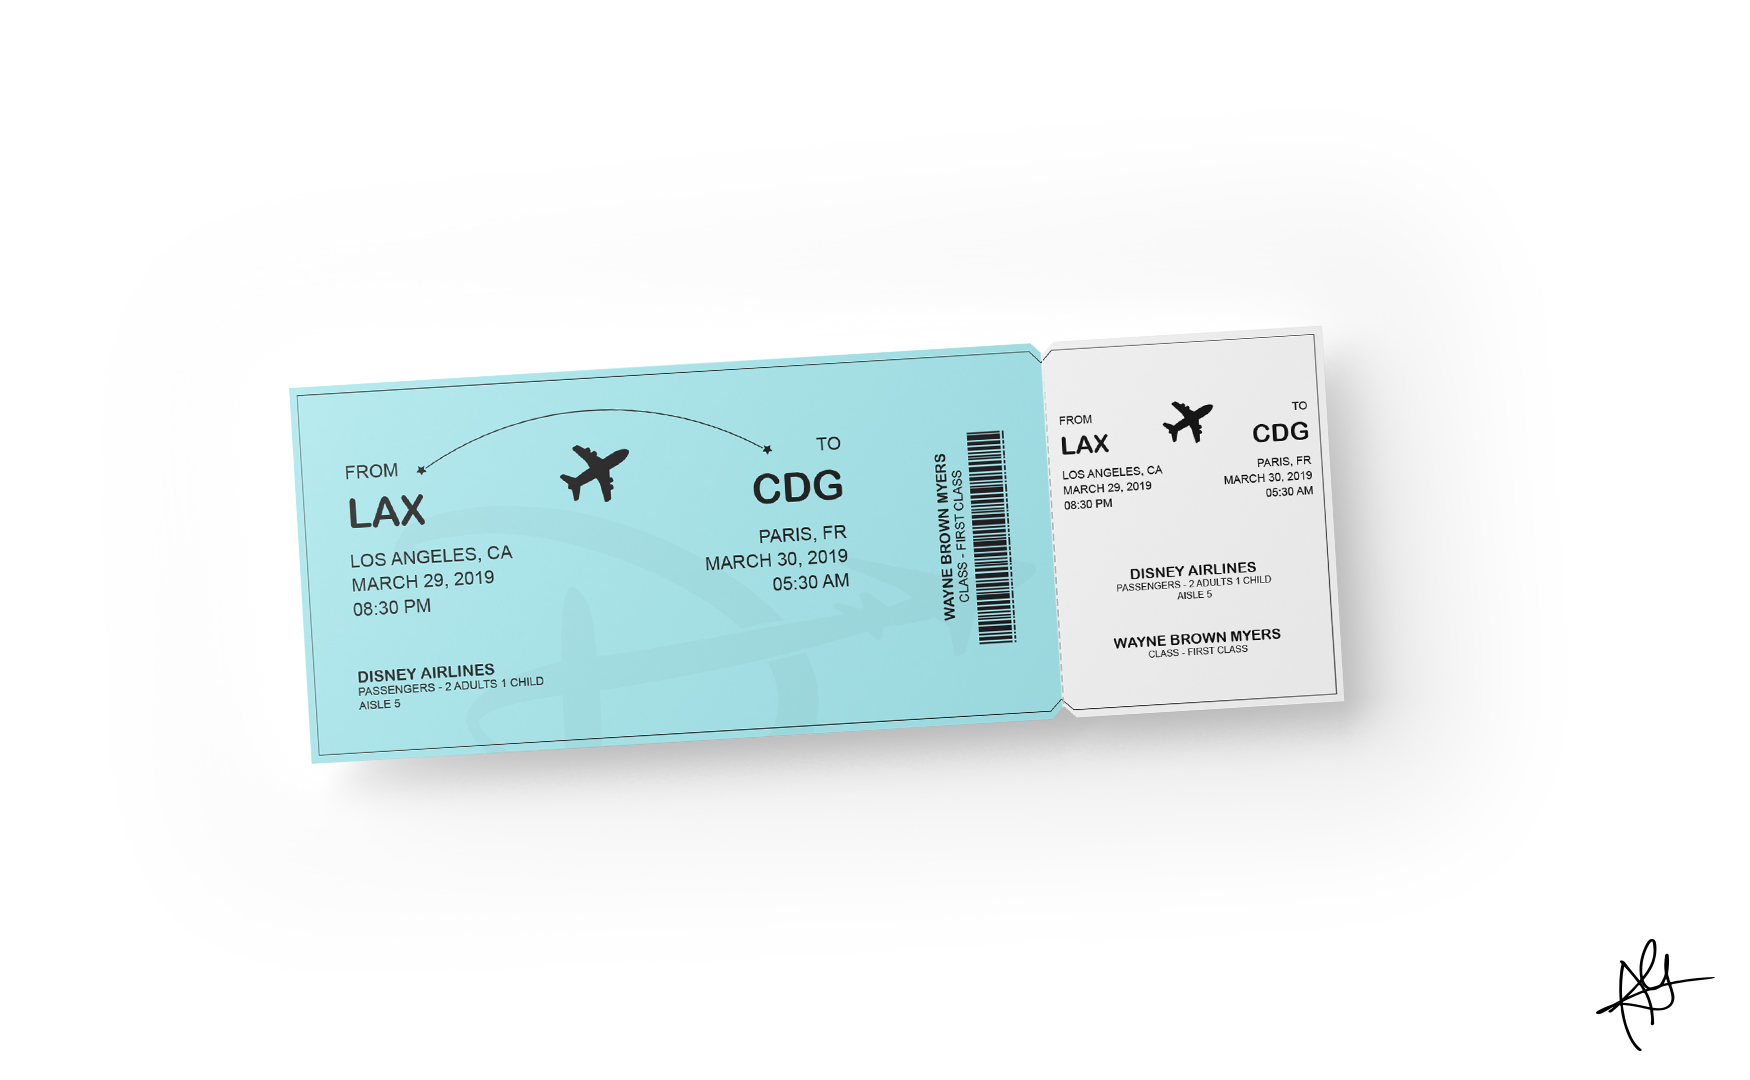 DISNEY AIRLINES CAMPAIGN - FLIGHT TICKET MOCKUP